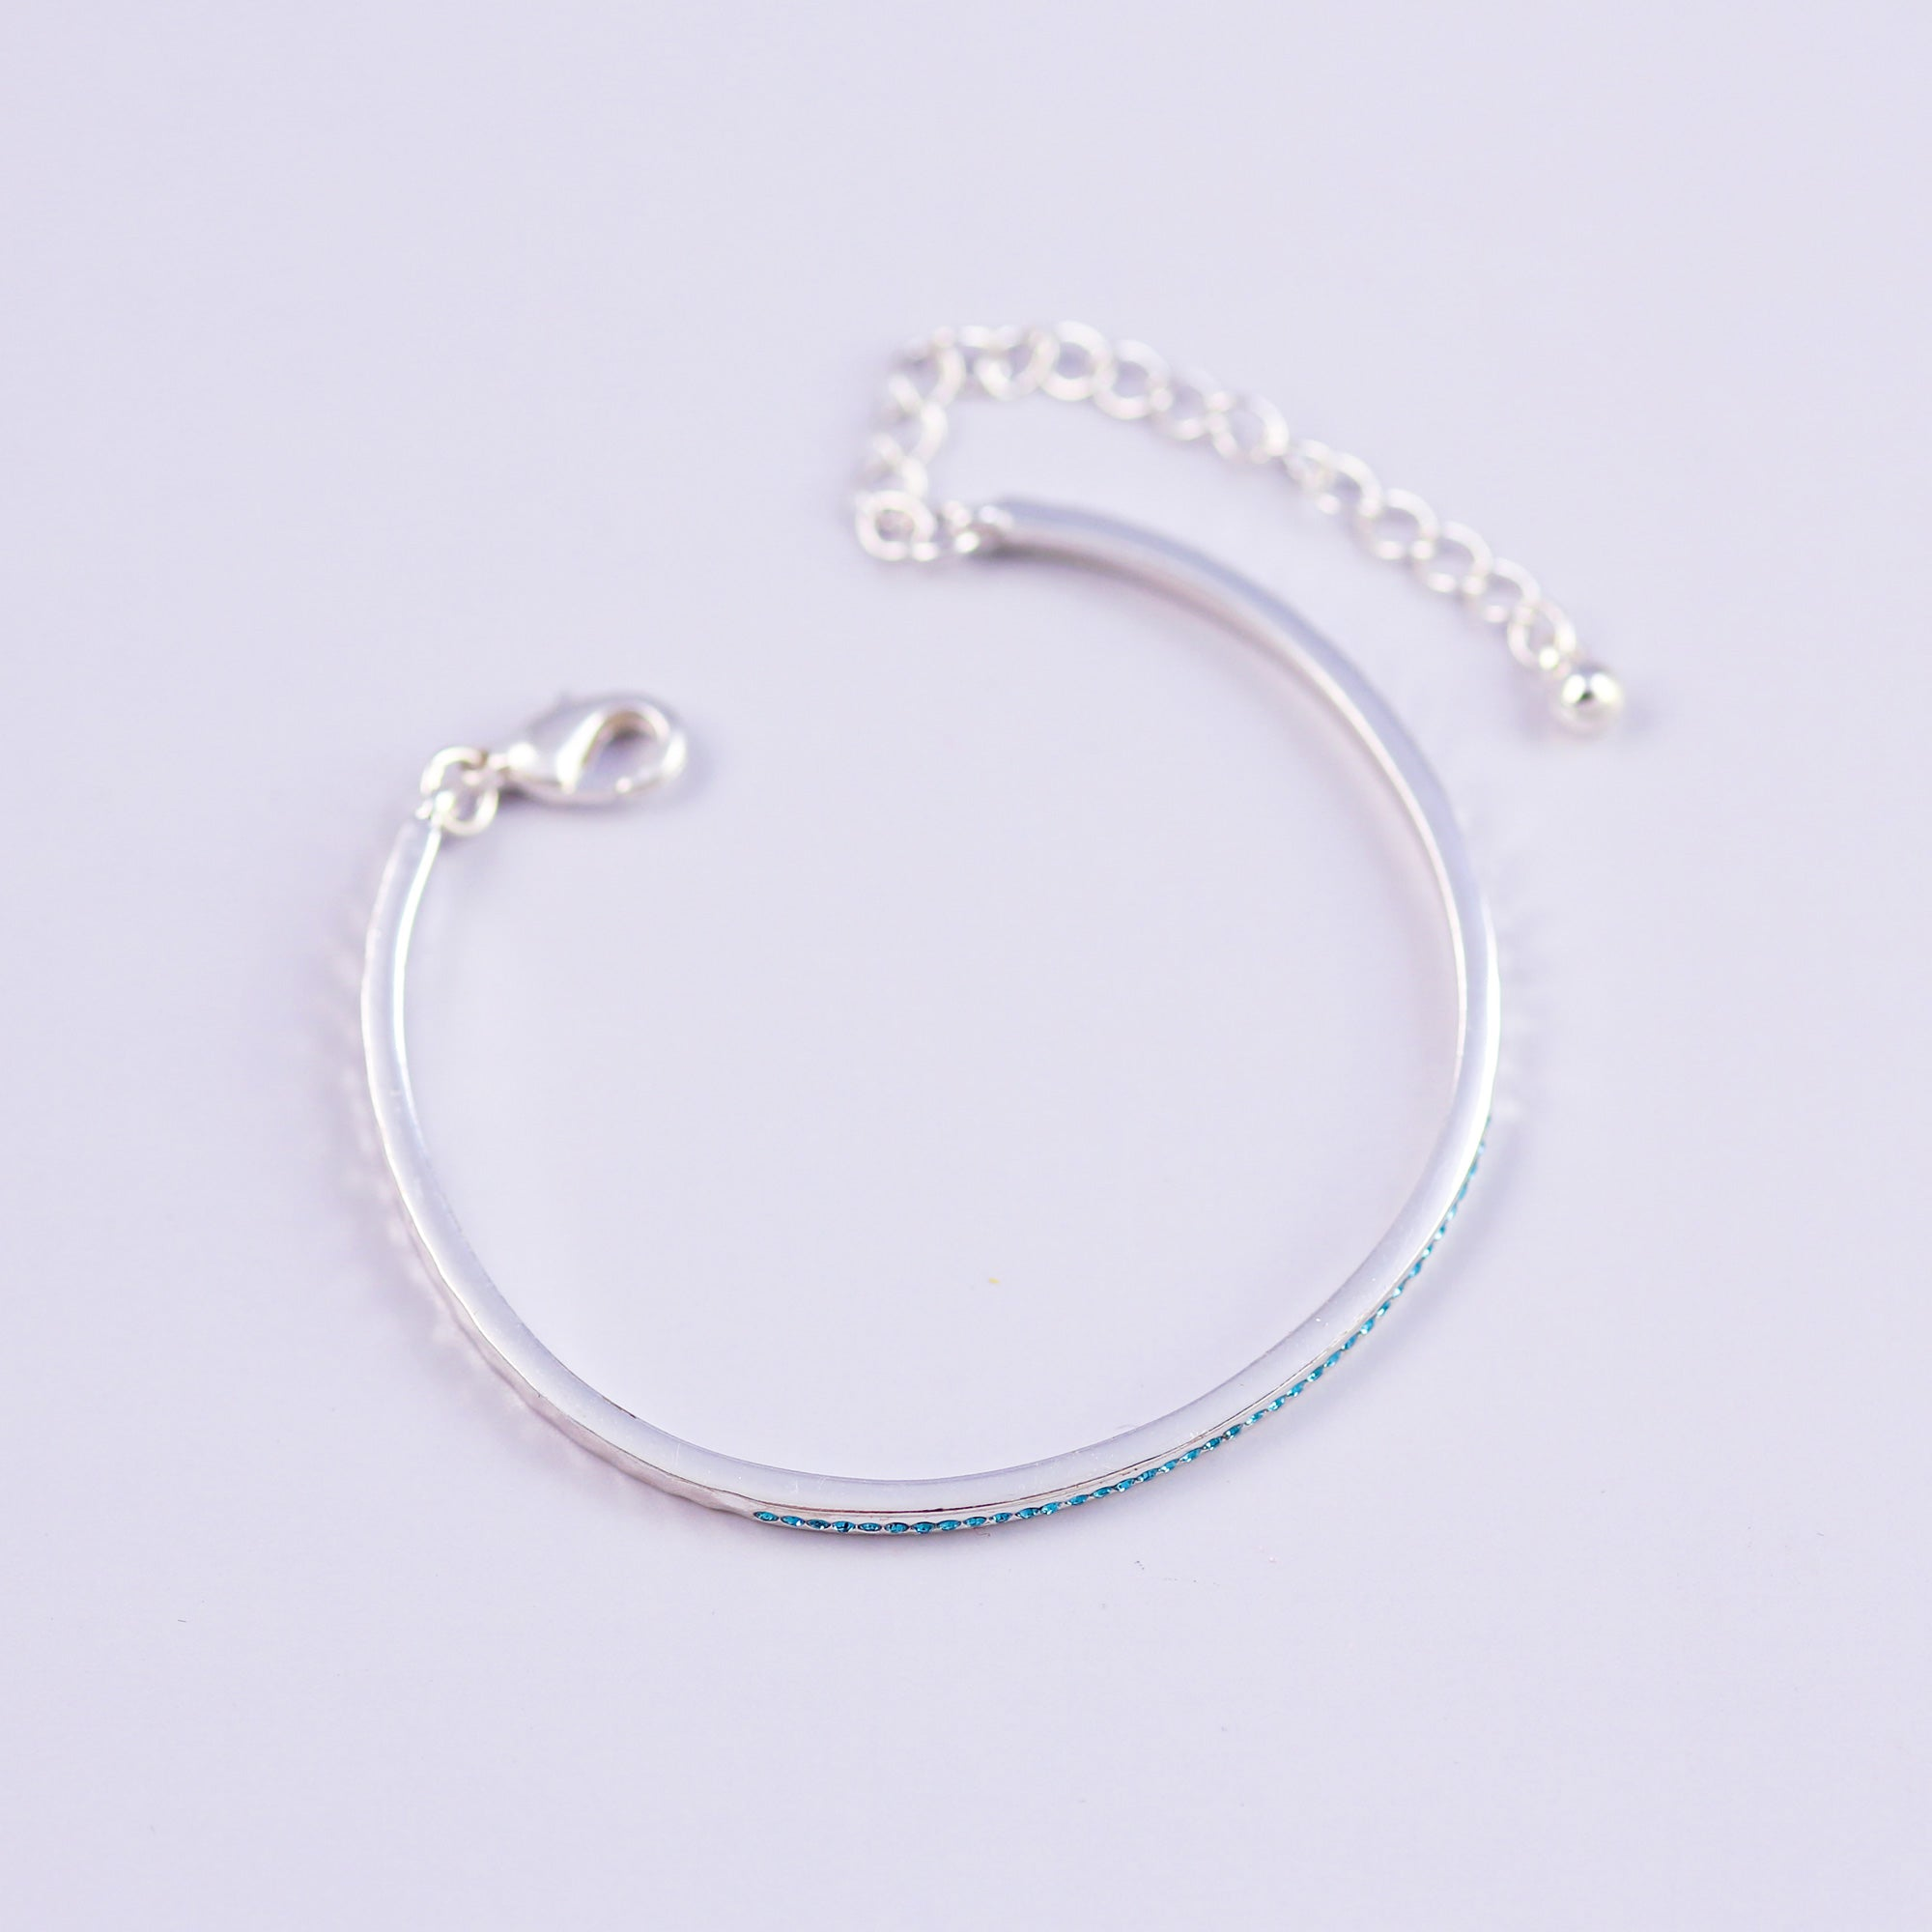 Silver & Turquoise Bangle